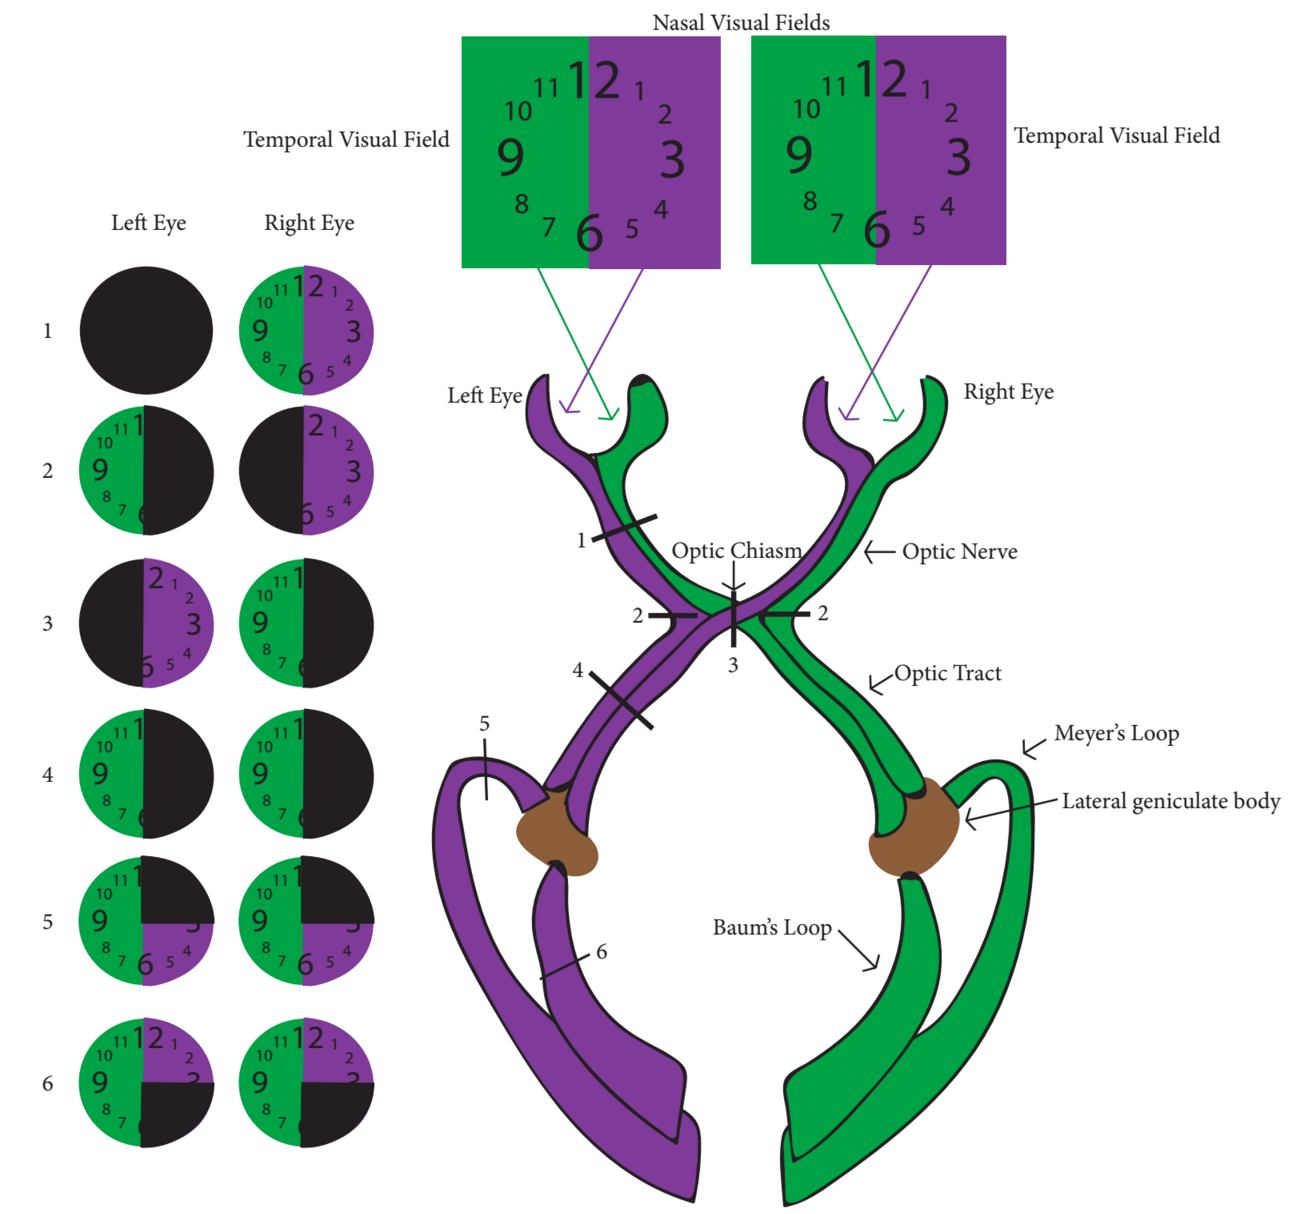 Figure 2.Visual Field Pathways, location of potential lesions causing neuro-ophathalomic vision loss and their associated deficits. [10]